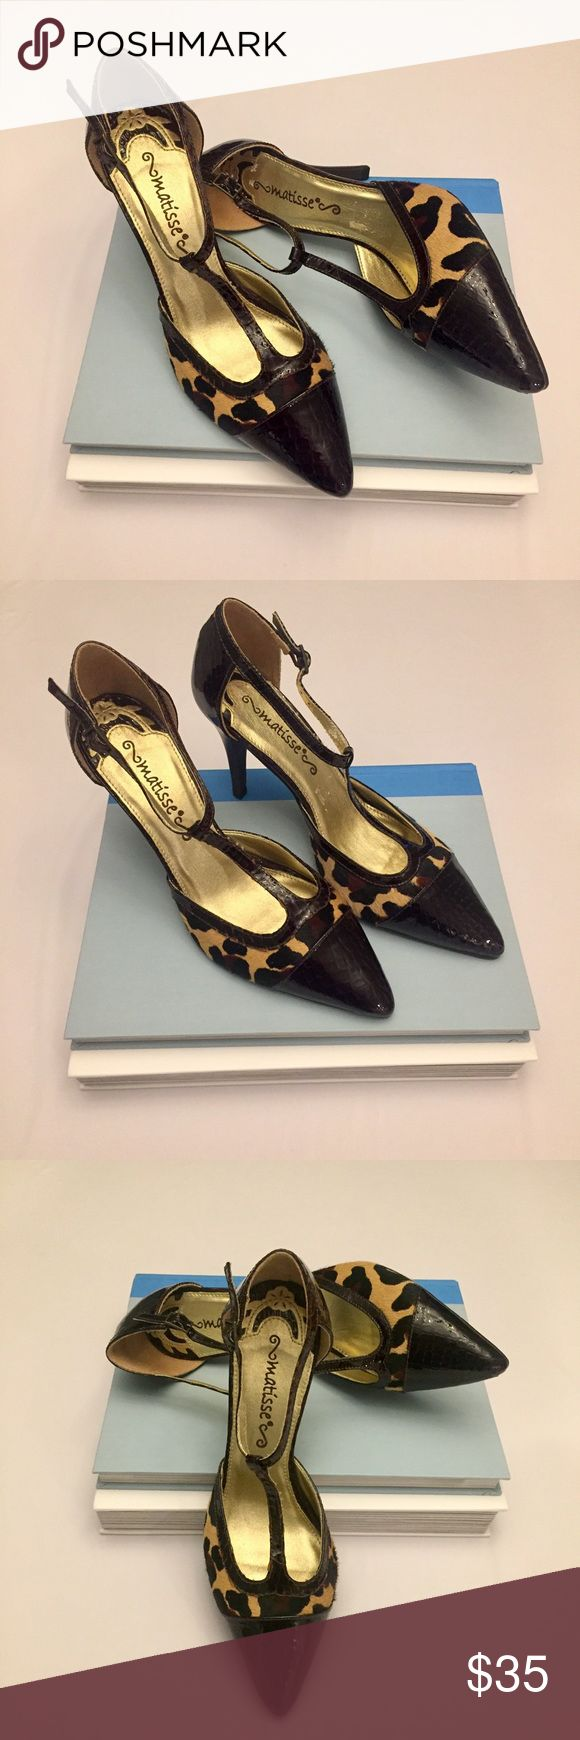 """Matisse Cow Hair Animal Print High Heels Classic Matisse animal print shoes with textured patent leather toe and heel.  The heel is 4"""" High. Matisse Shoes Heels"""